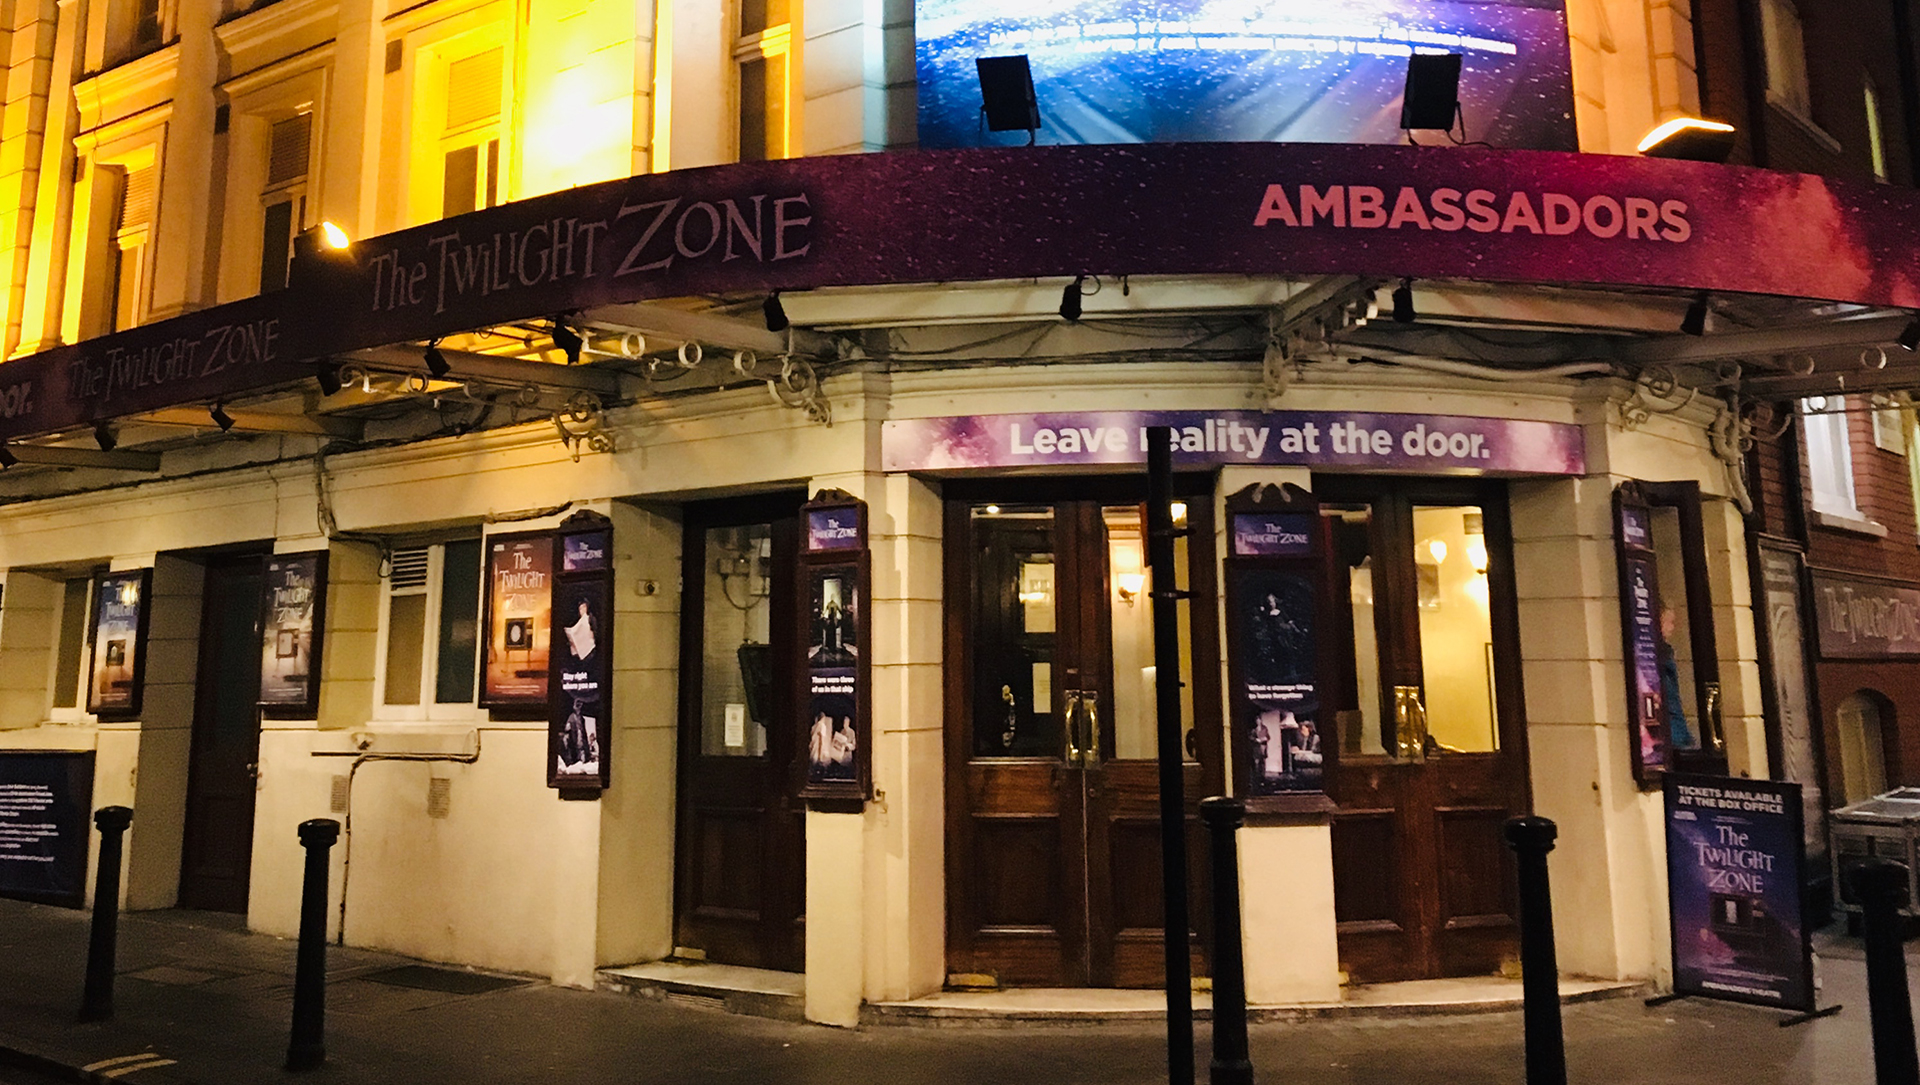 External of the Ambassadors Theatre